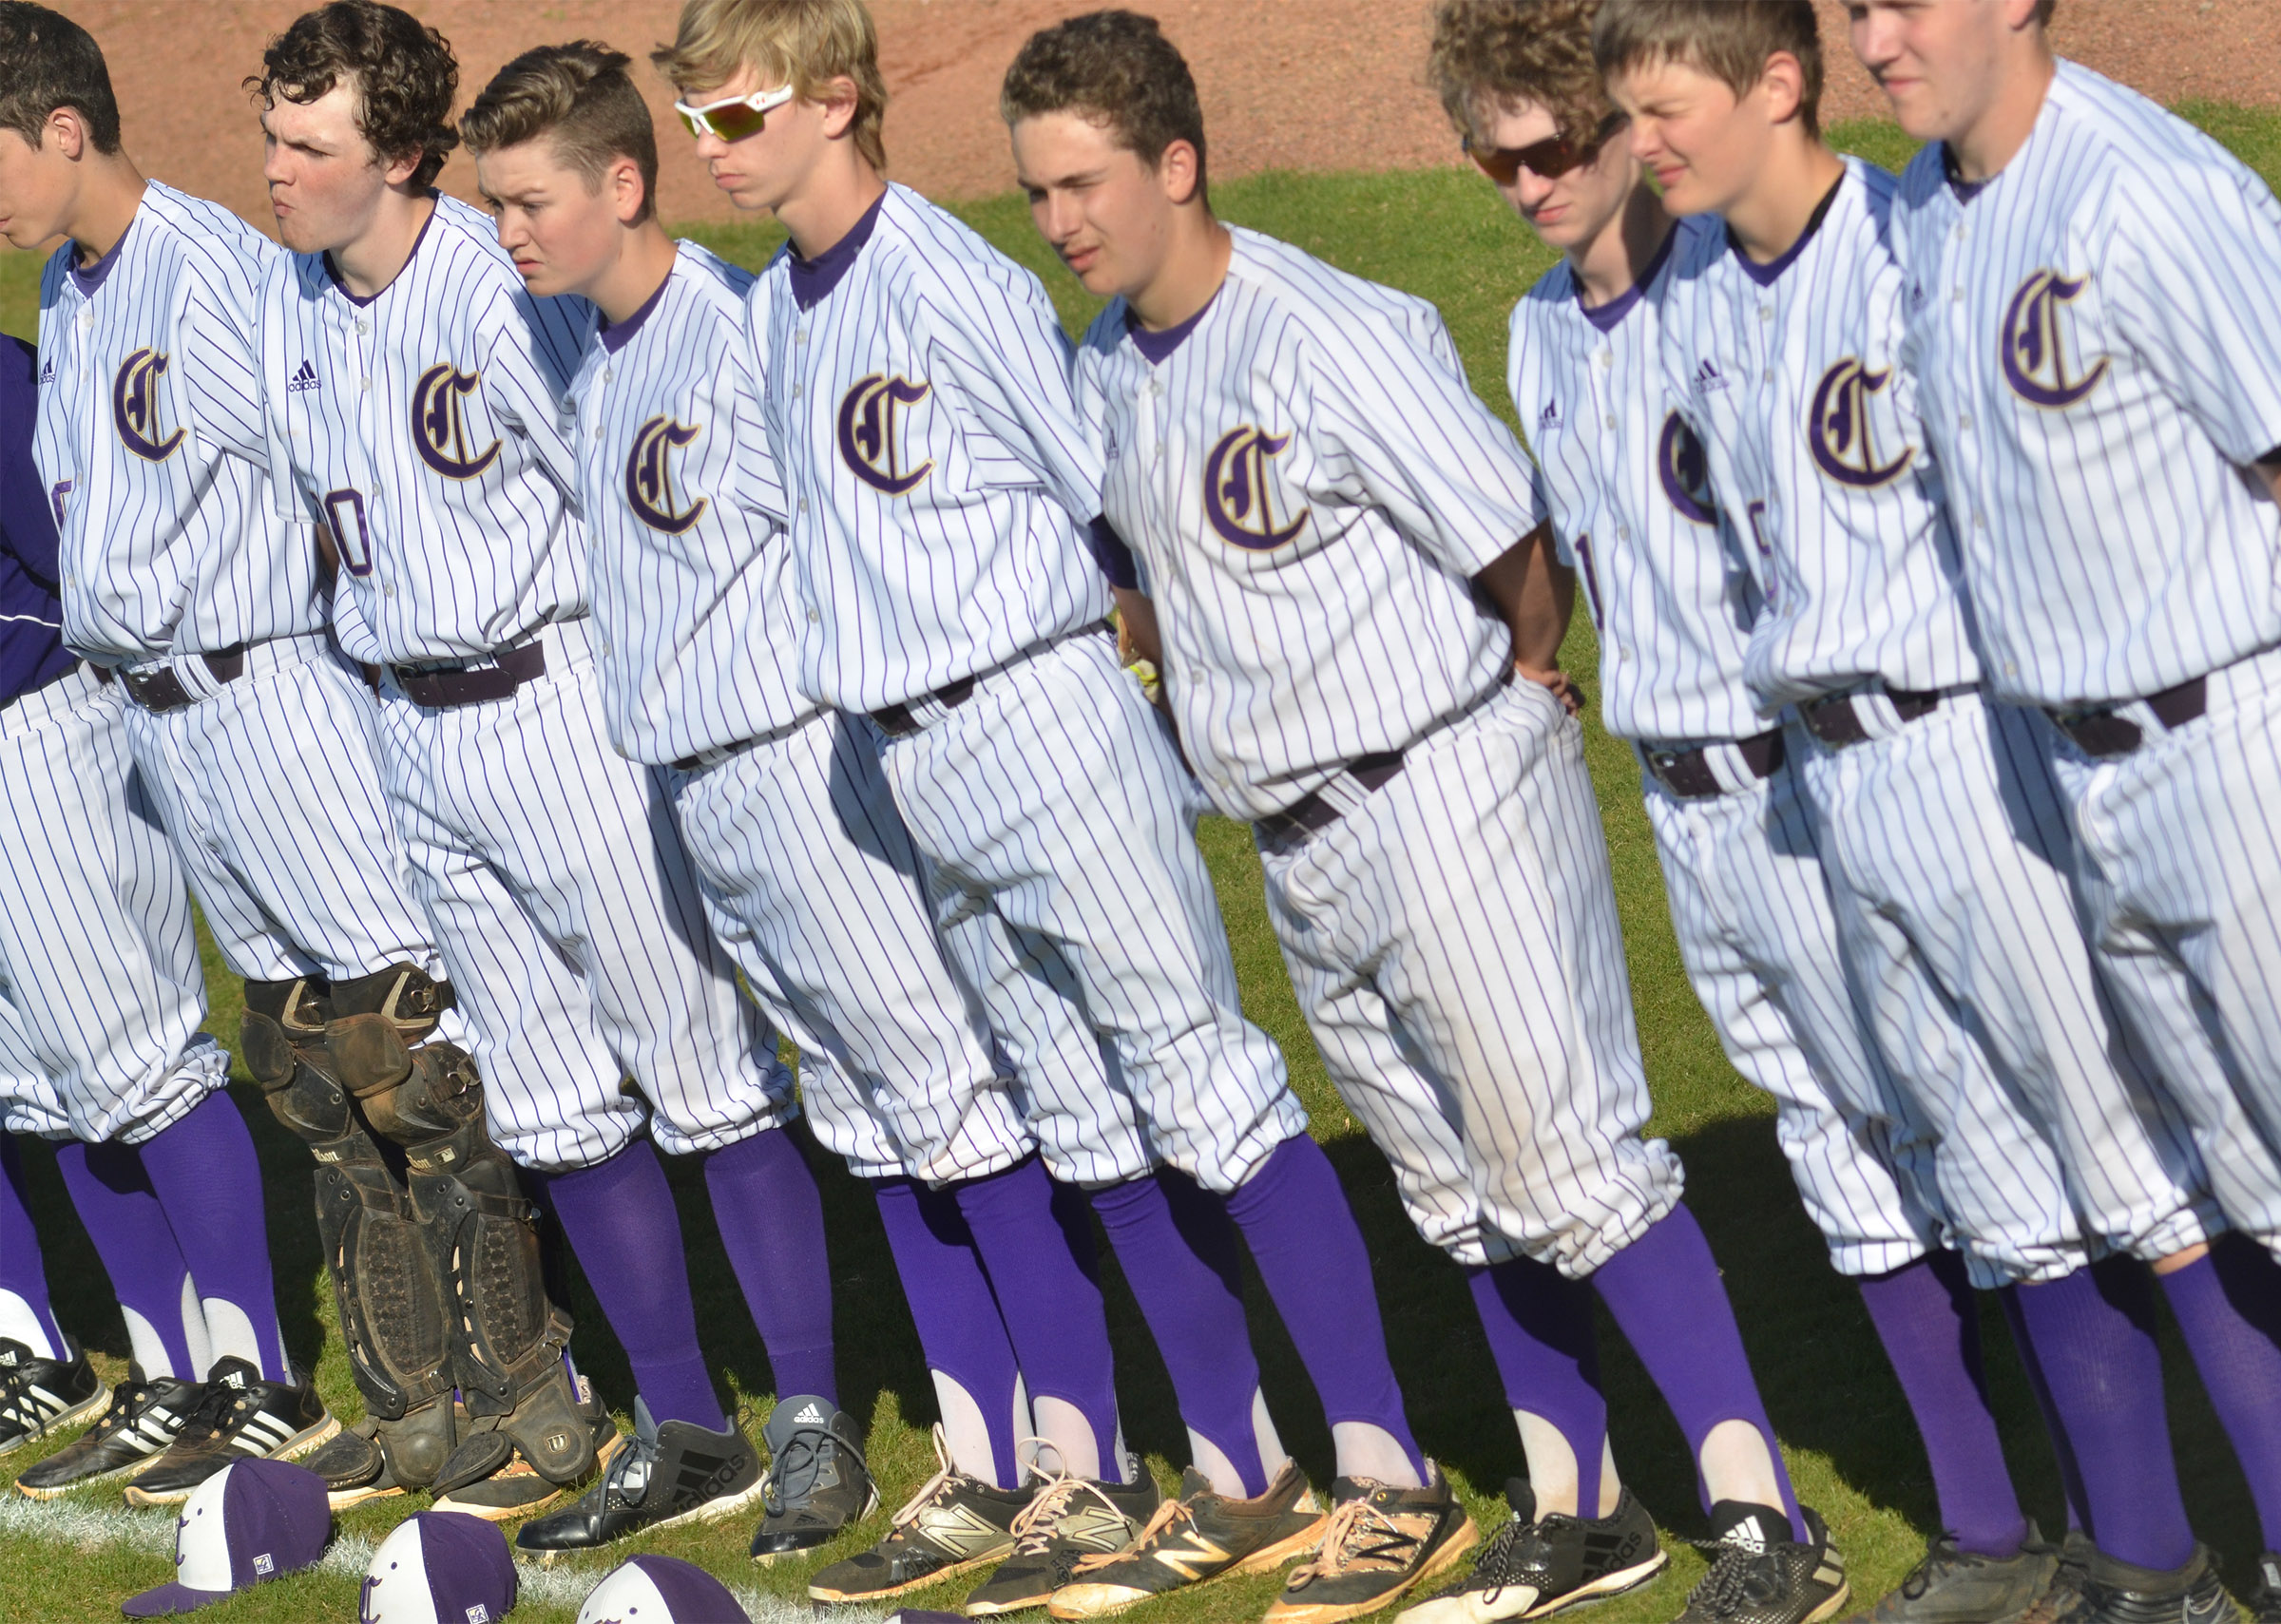 CHS baseball players stand for the National Anthem.